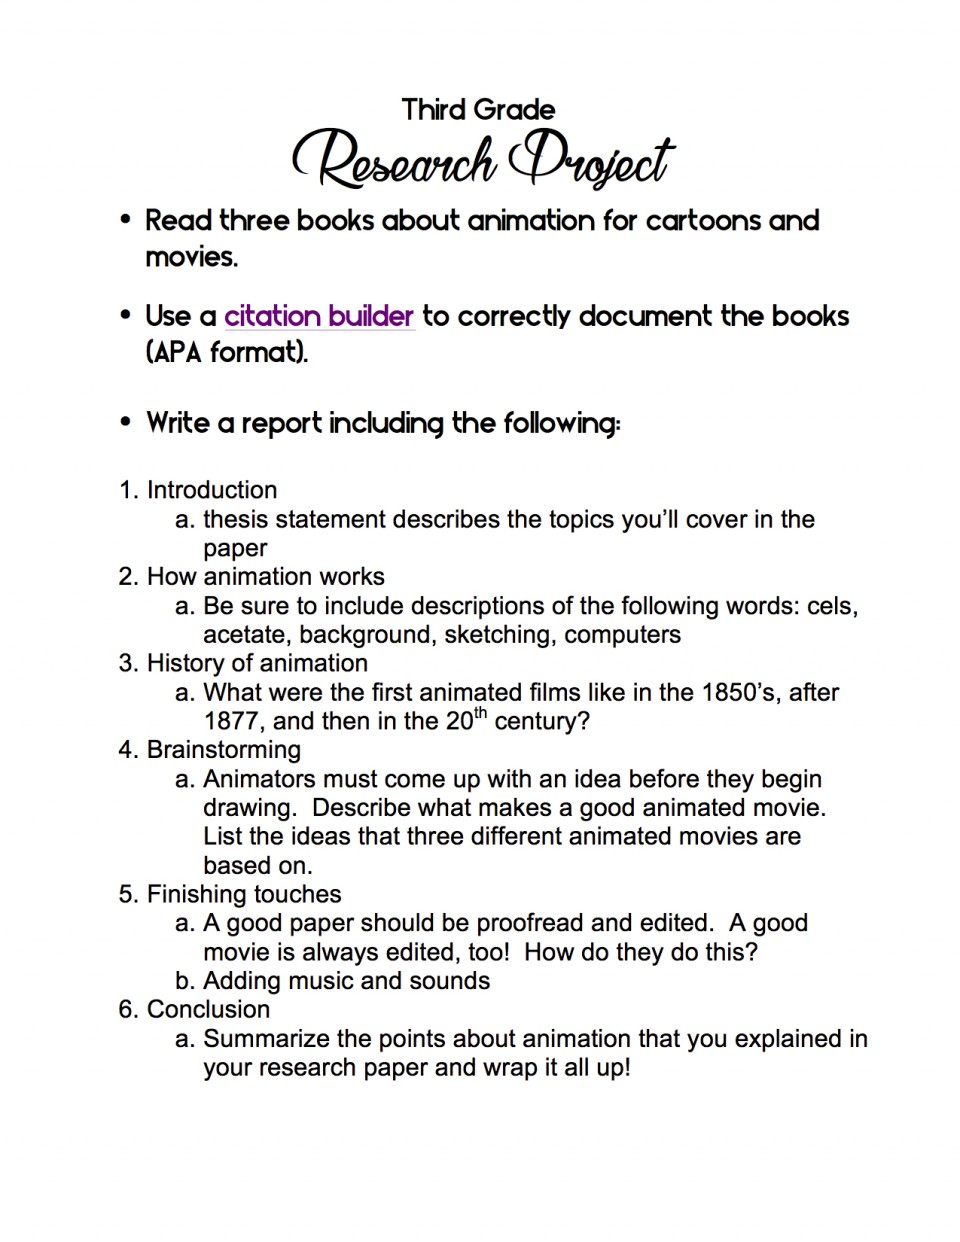 002 Research Paper Cancer Ideas 3rd Grade Shocking Topic 960